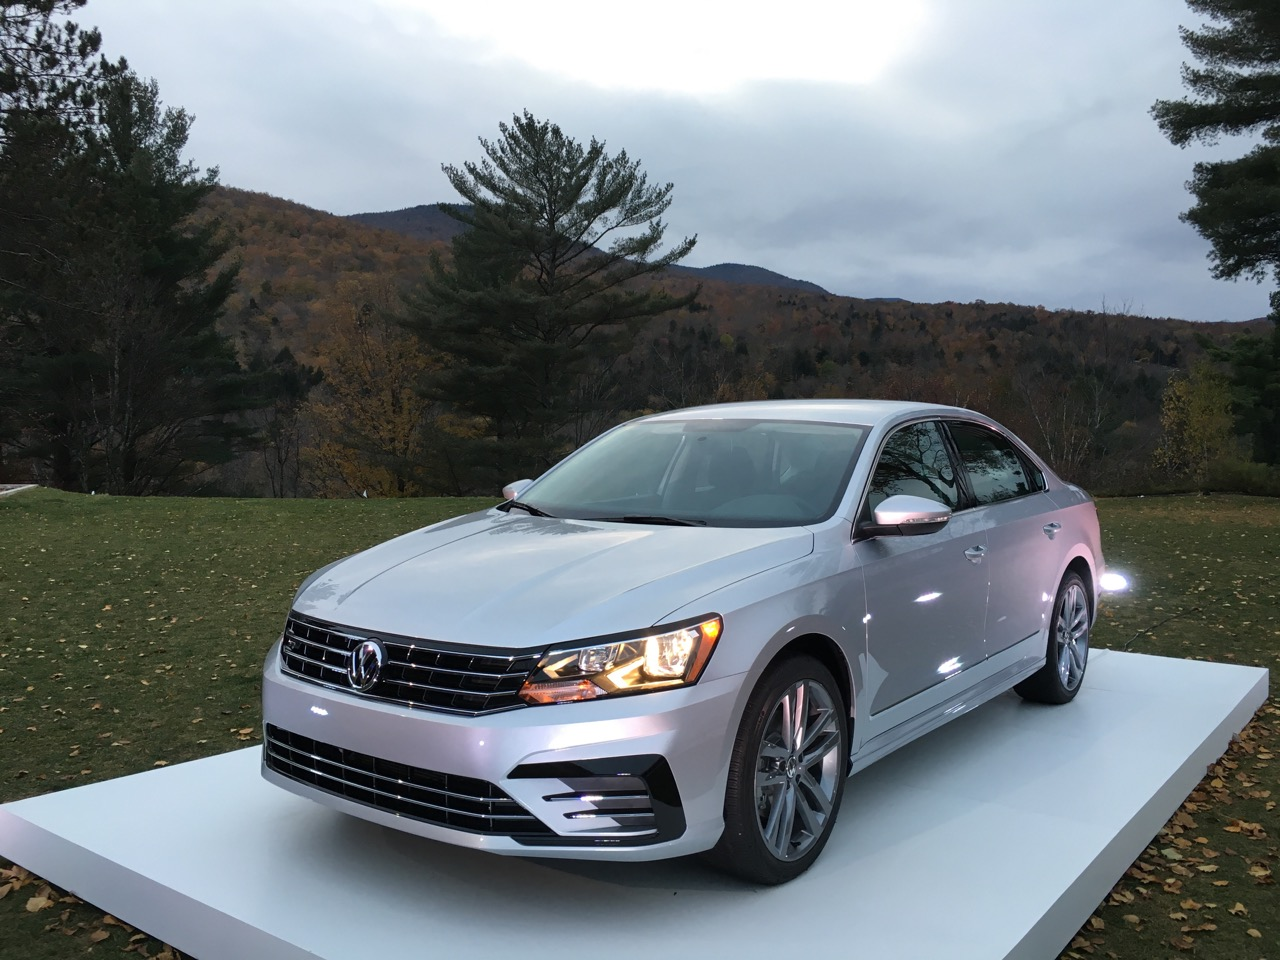 2016 volkswagen passat it 39 s the same but everything has changed review by thom cannell. Black Bedroom Furniture Sets. Home Design Ideas